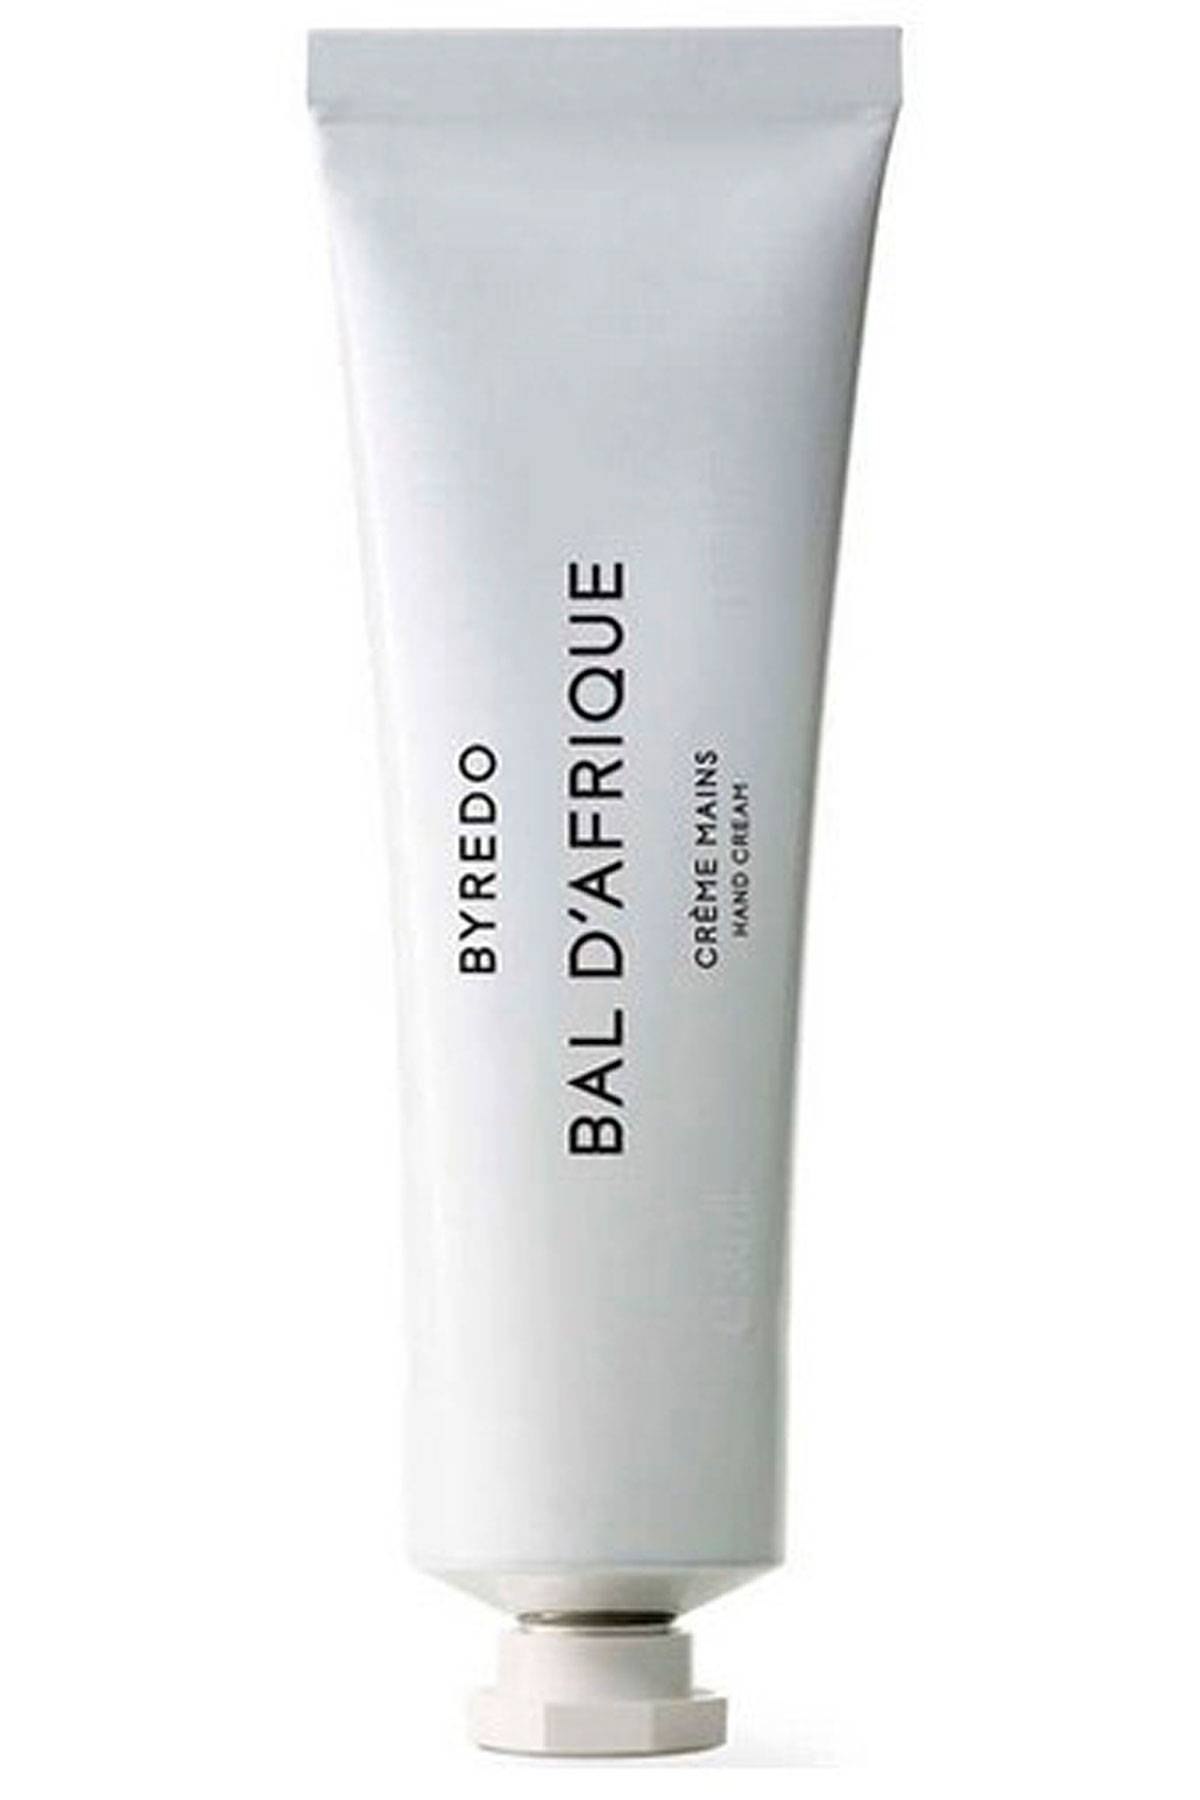 Byredo Beauty for Women, Bal D Afrique - Hand Cream - 30 Ml, 2019, 30 ml